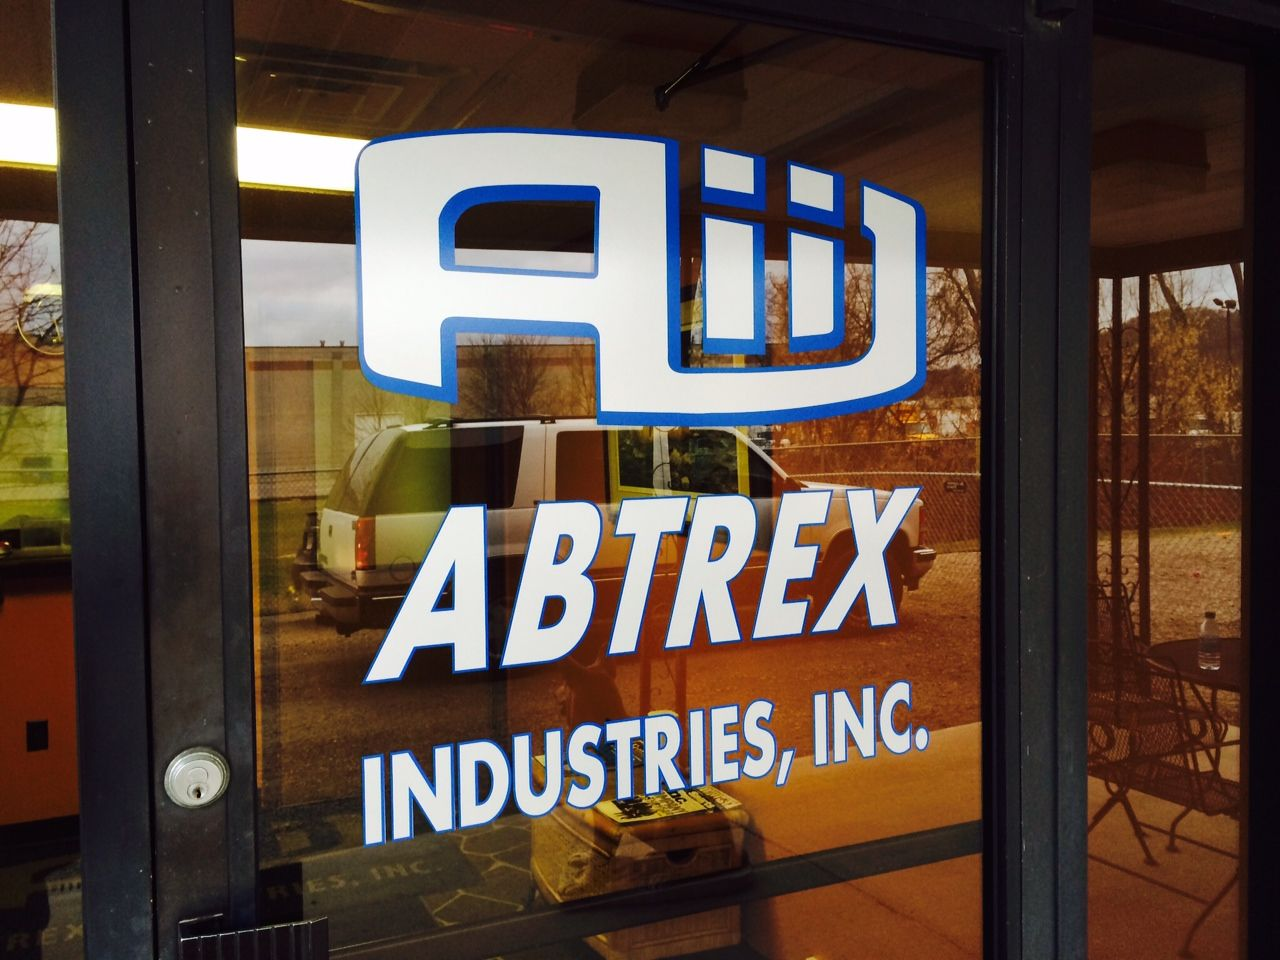 Abtrex Industries, Inc. window graphics for their storefront.